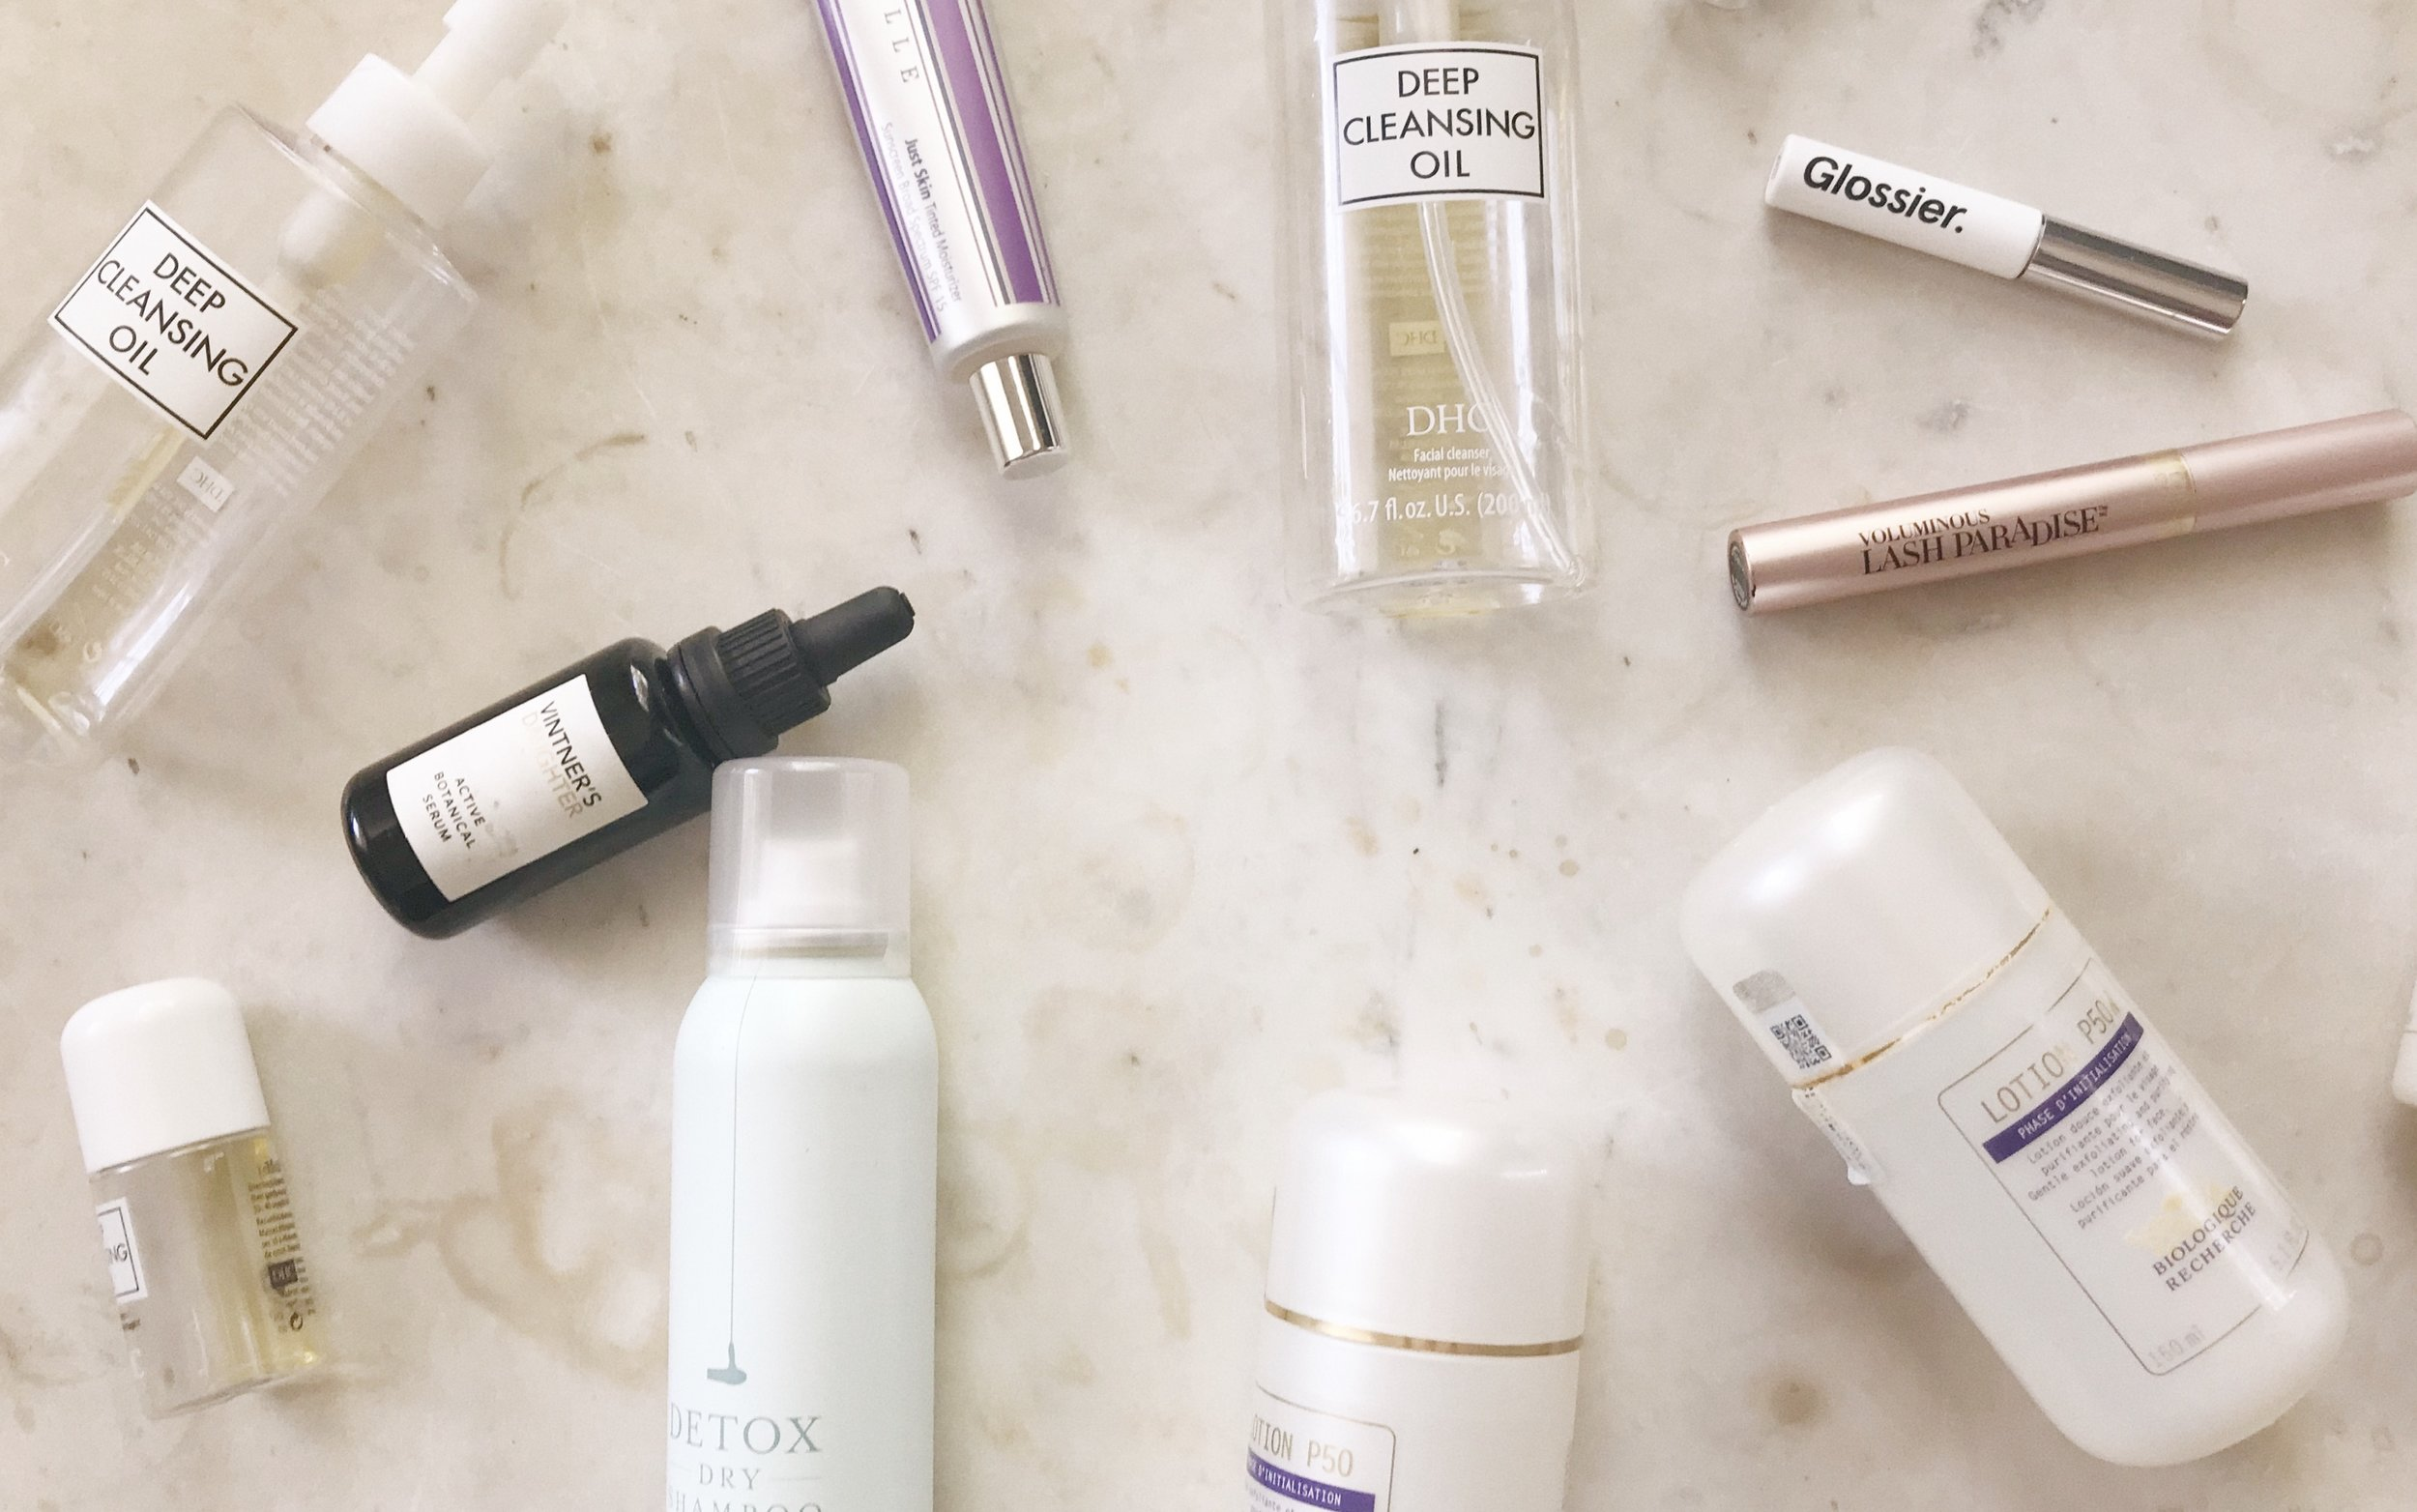 dhc-deep-cleansing-oil-vintners-daughter-review-glossier-boy-brow-chantecaille-just-skin-tinted-moisturizer-drybar-detox-dry-shampoo.jpg